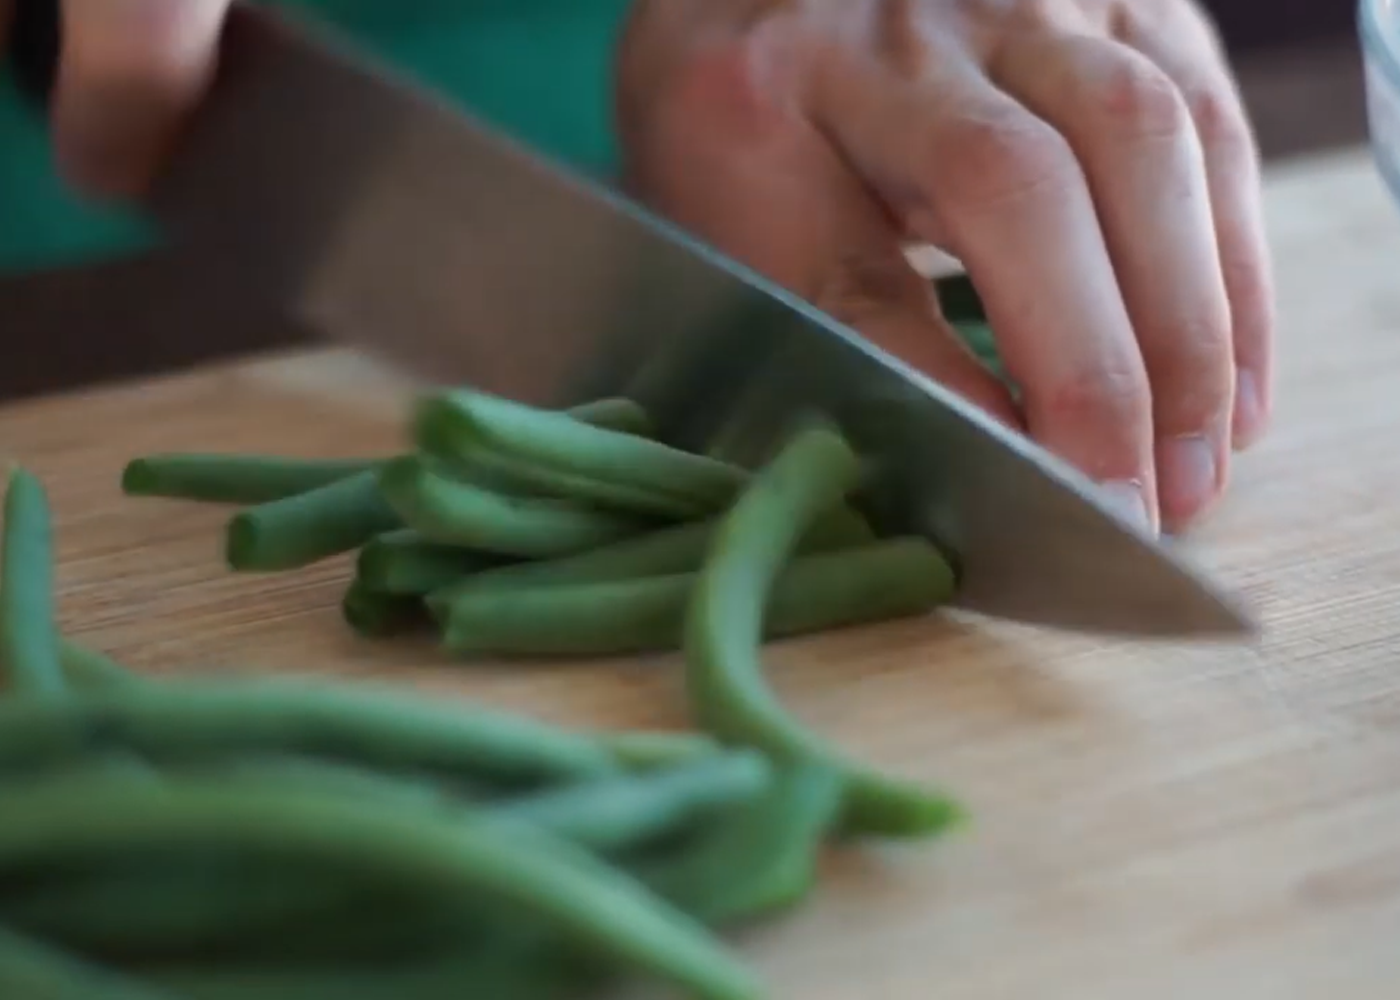 person cuts green beans with a knife